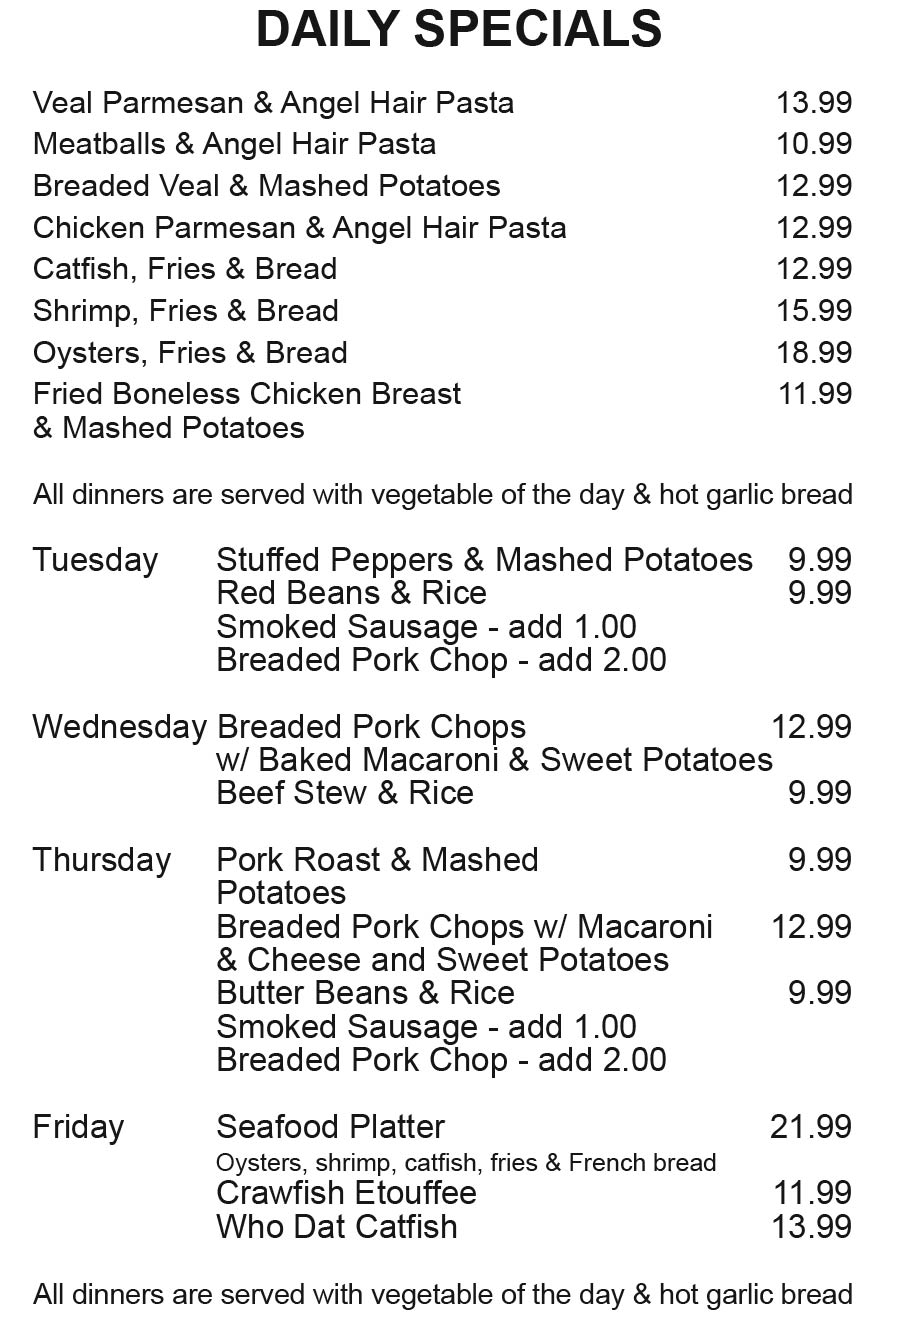 DAILY-SPECIALS